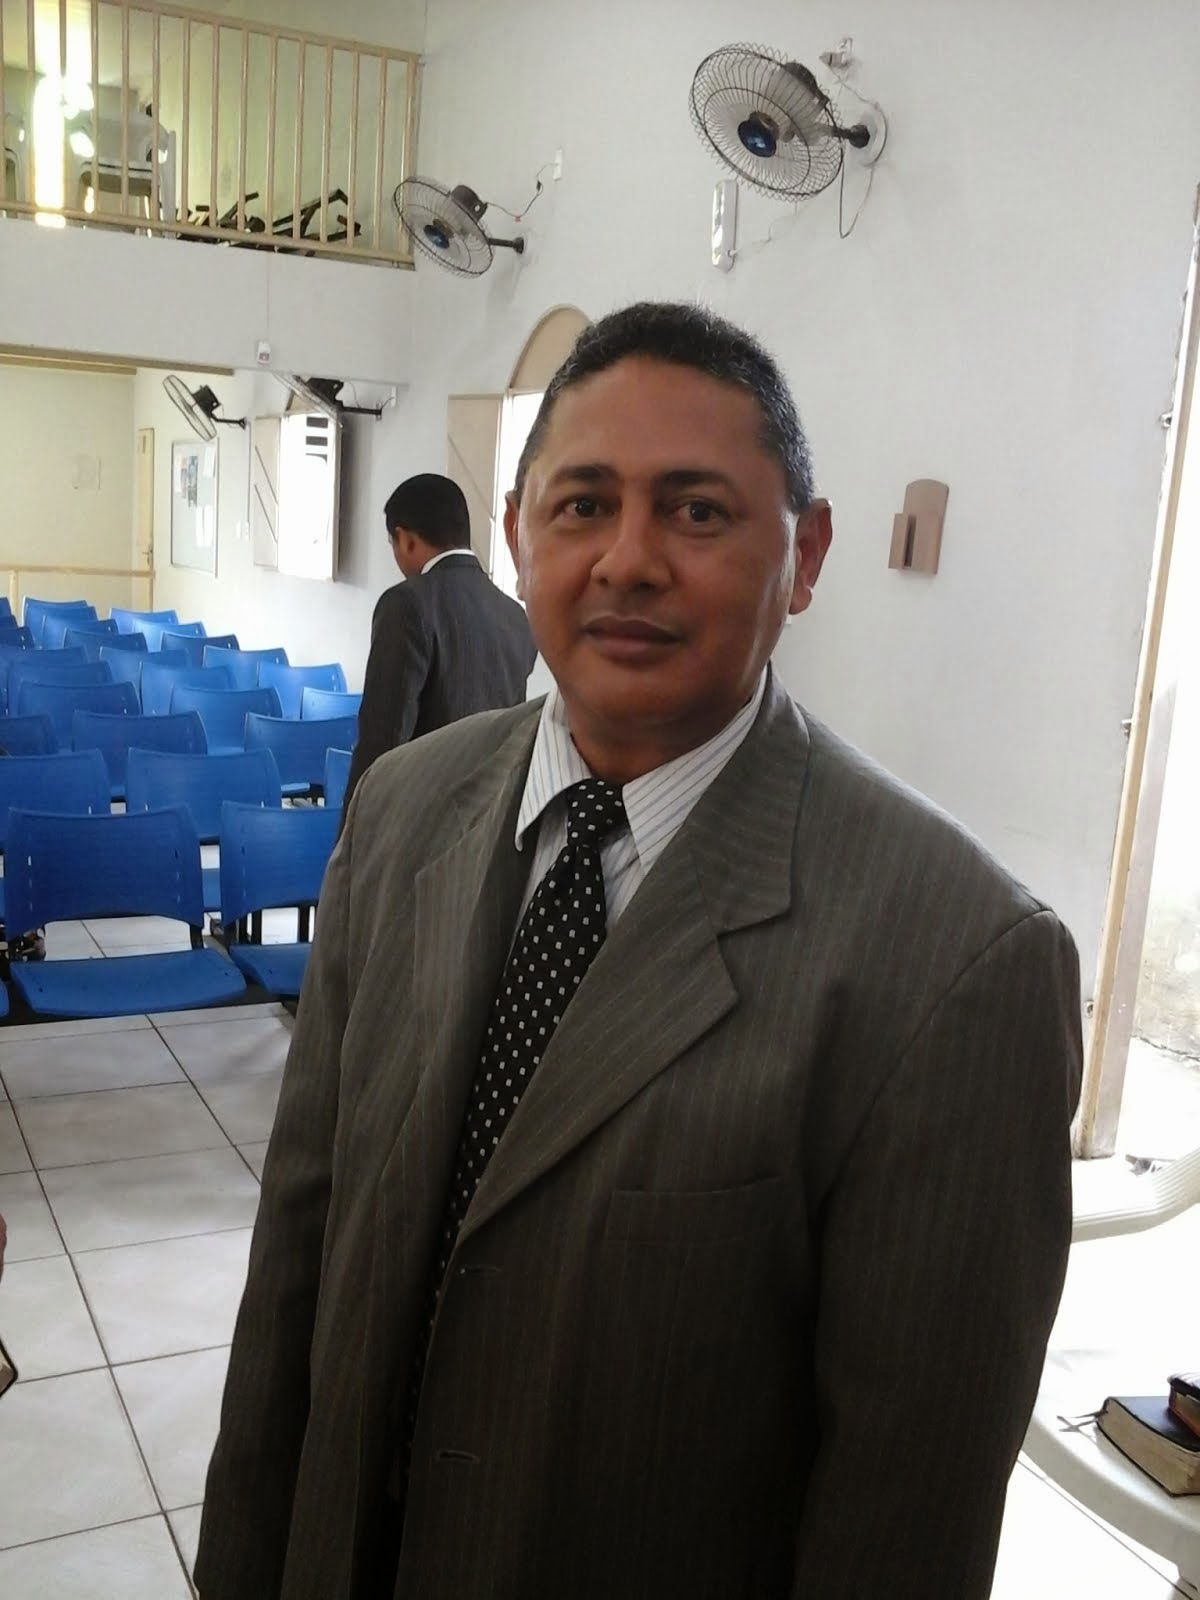 Pastor Francisco Sousa